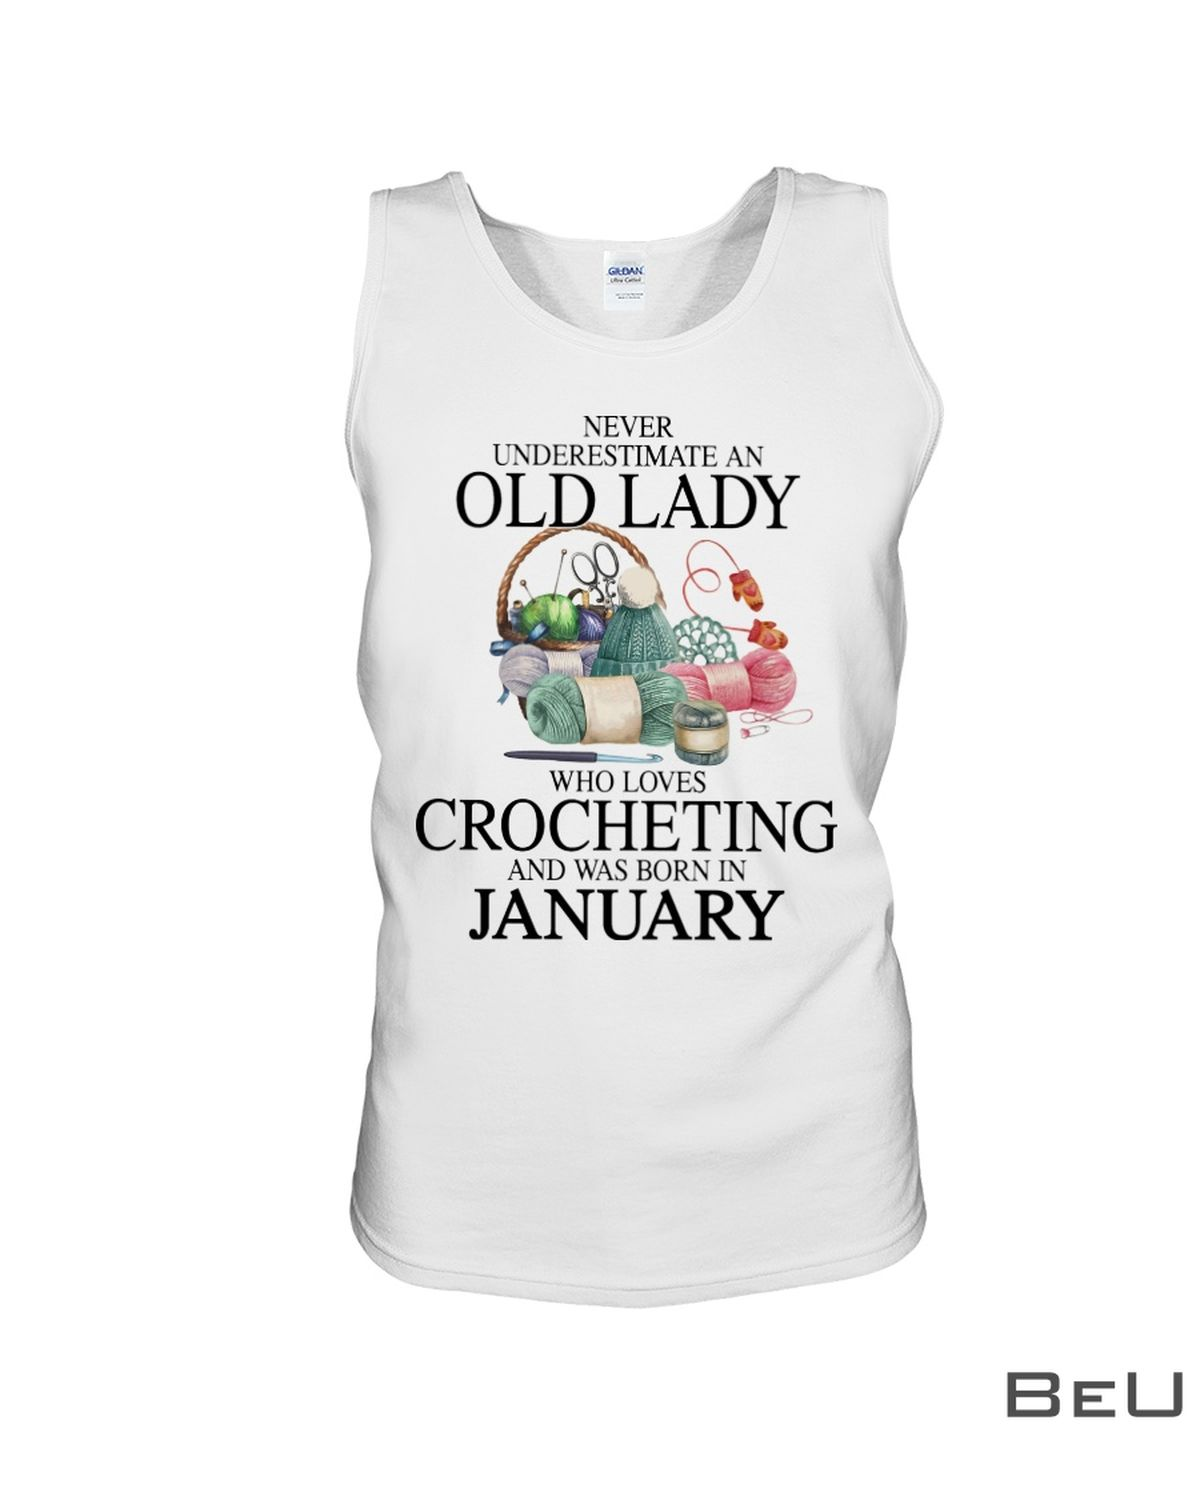 Never underestimate an old lady who loves Crocheting and was born in January shirtc